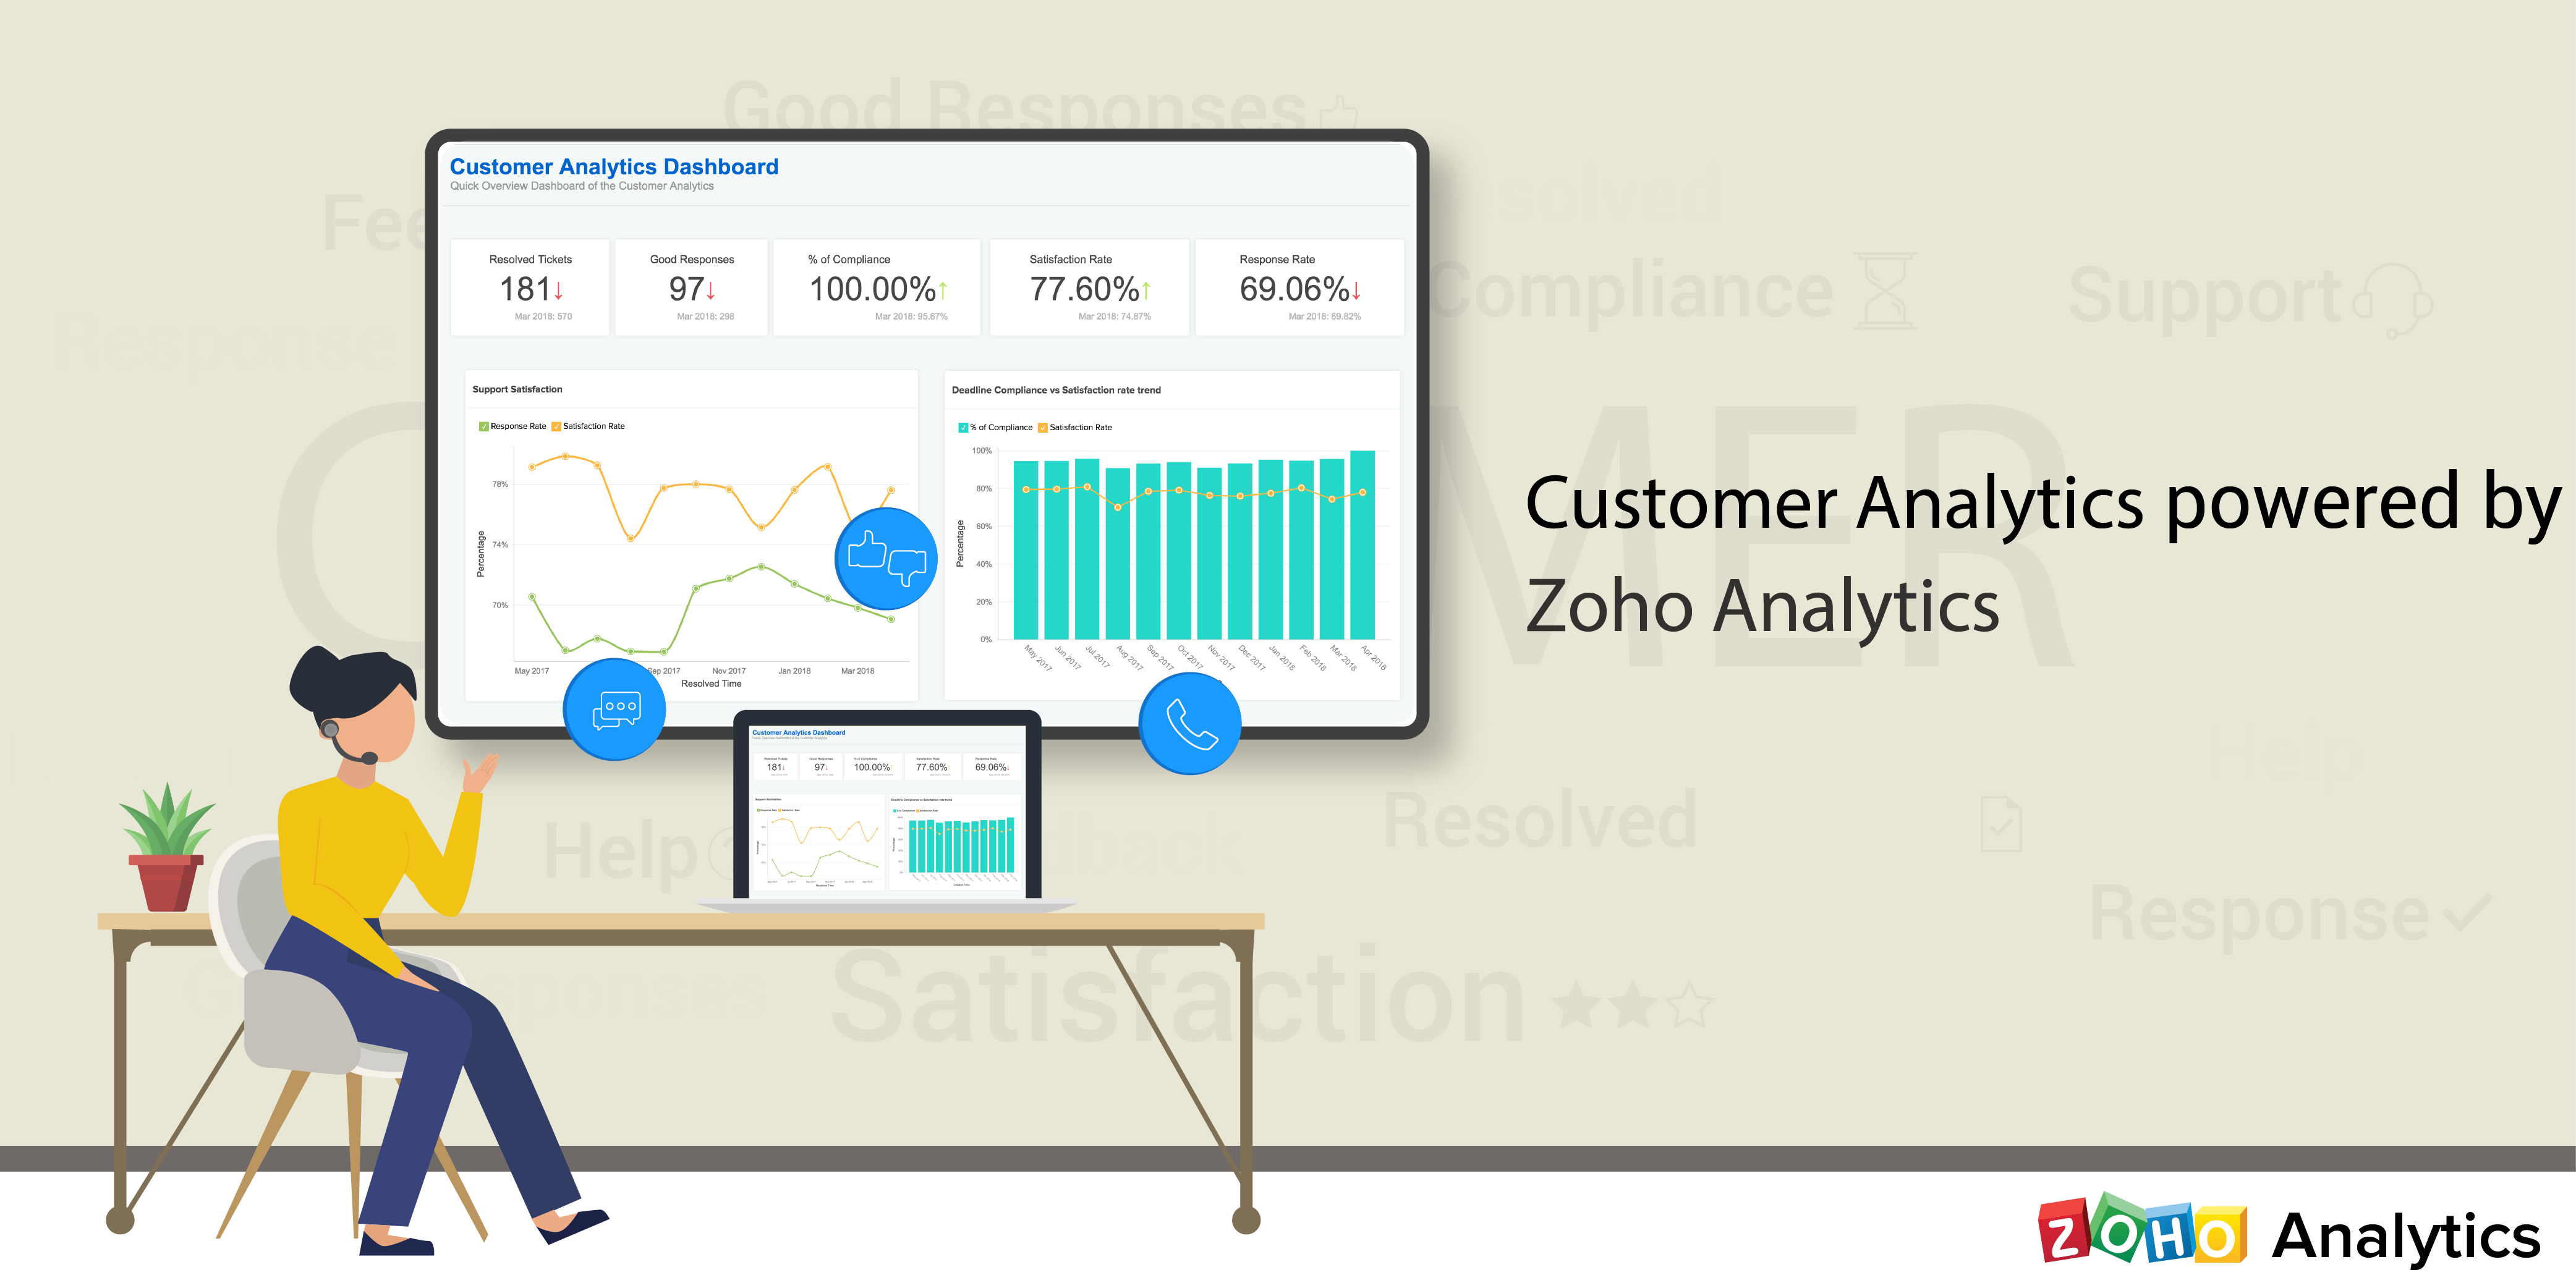 Customer Analytics powered by Zoho Analytics